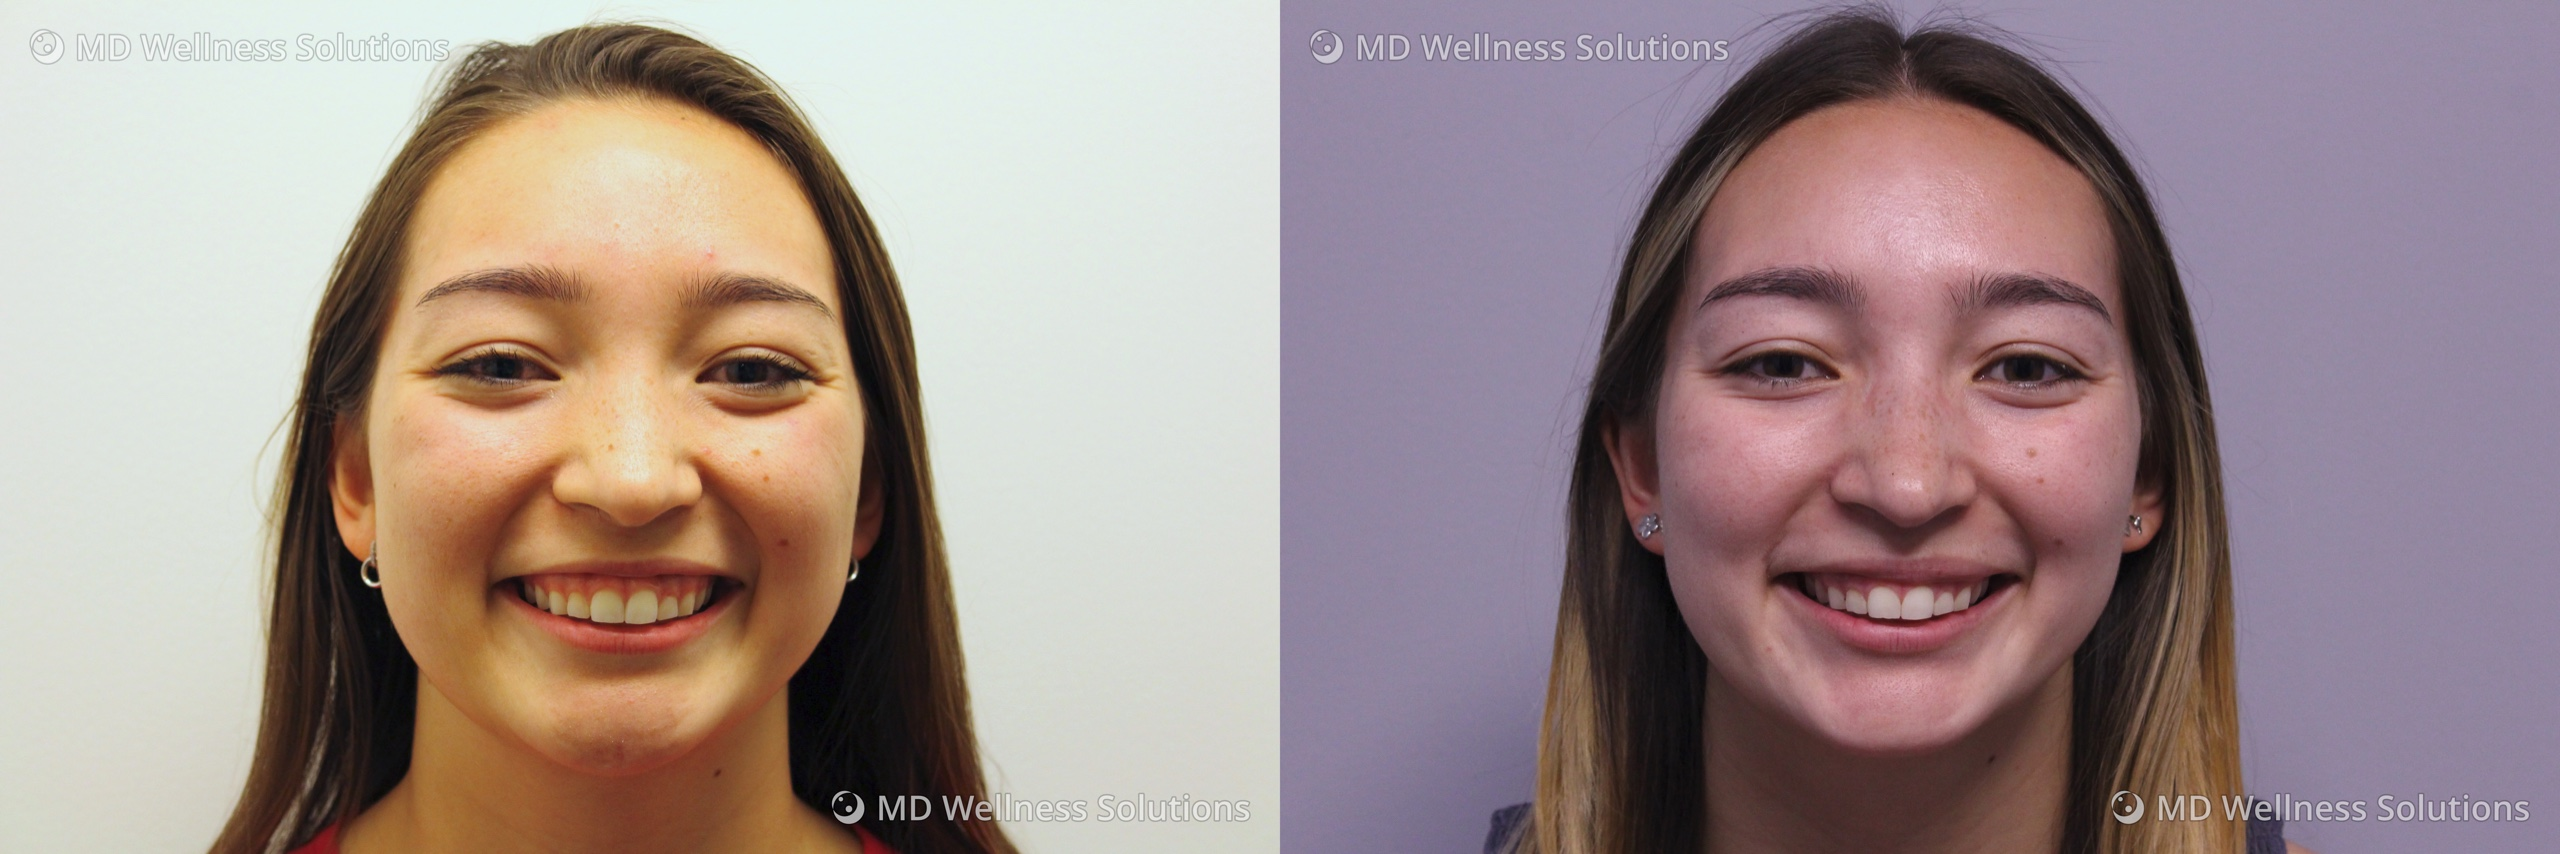 18-24 year old woman before and after neurotoxin treatment